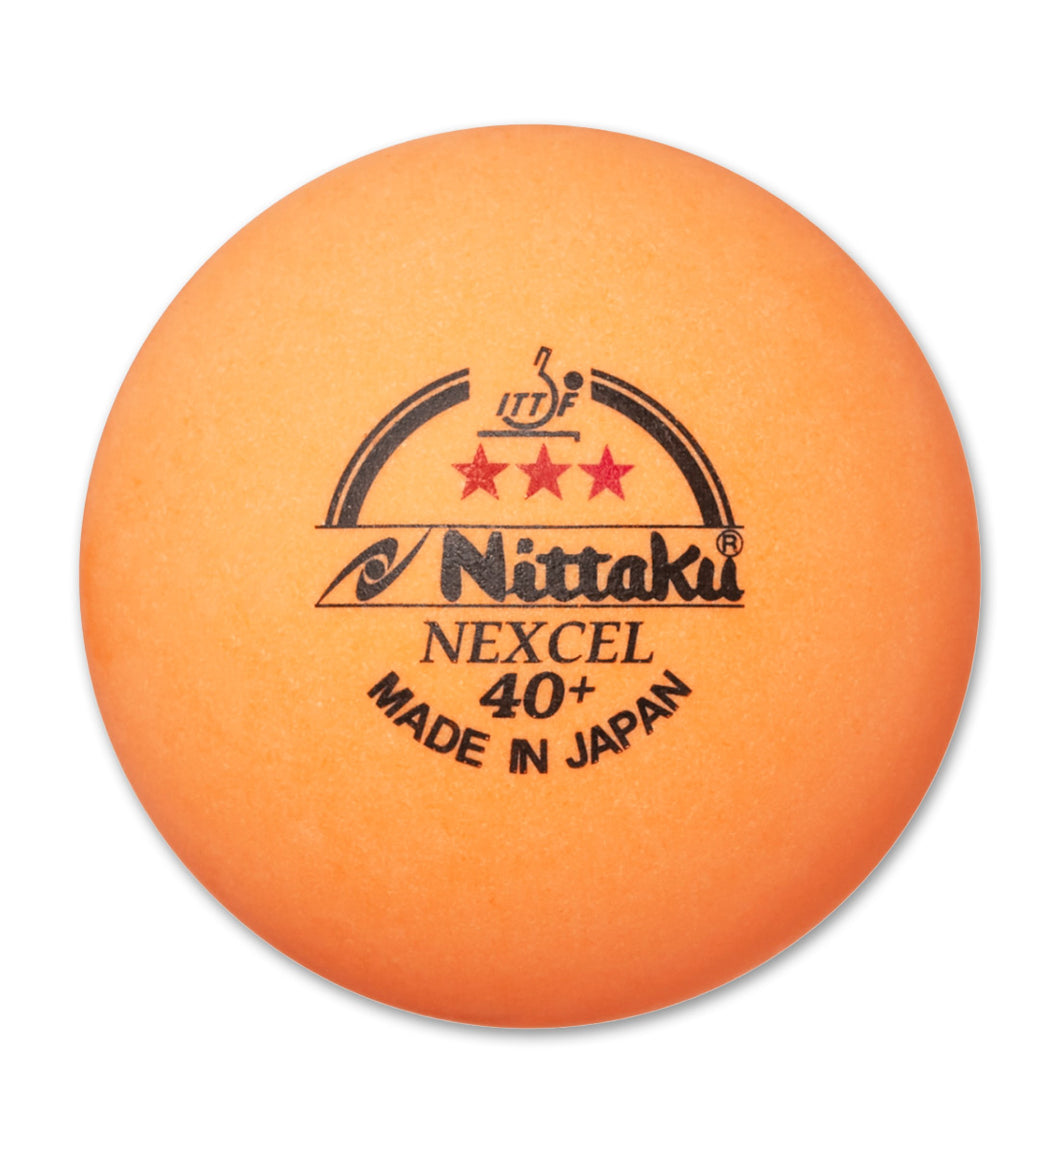 Nittaku 3-Star Nexcel 40+ Orange (3 Pack)